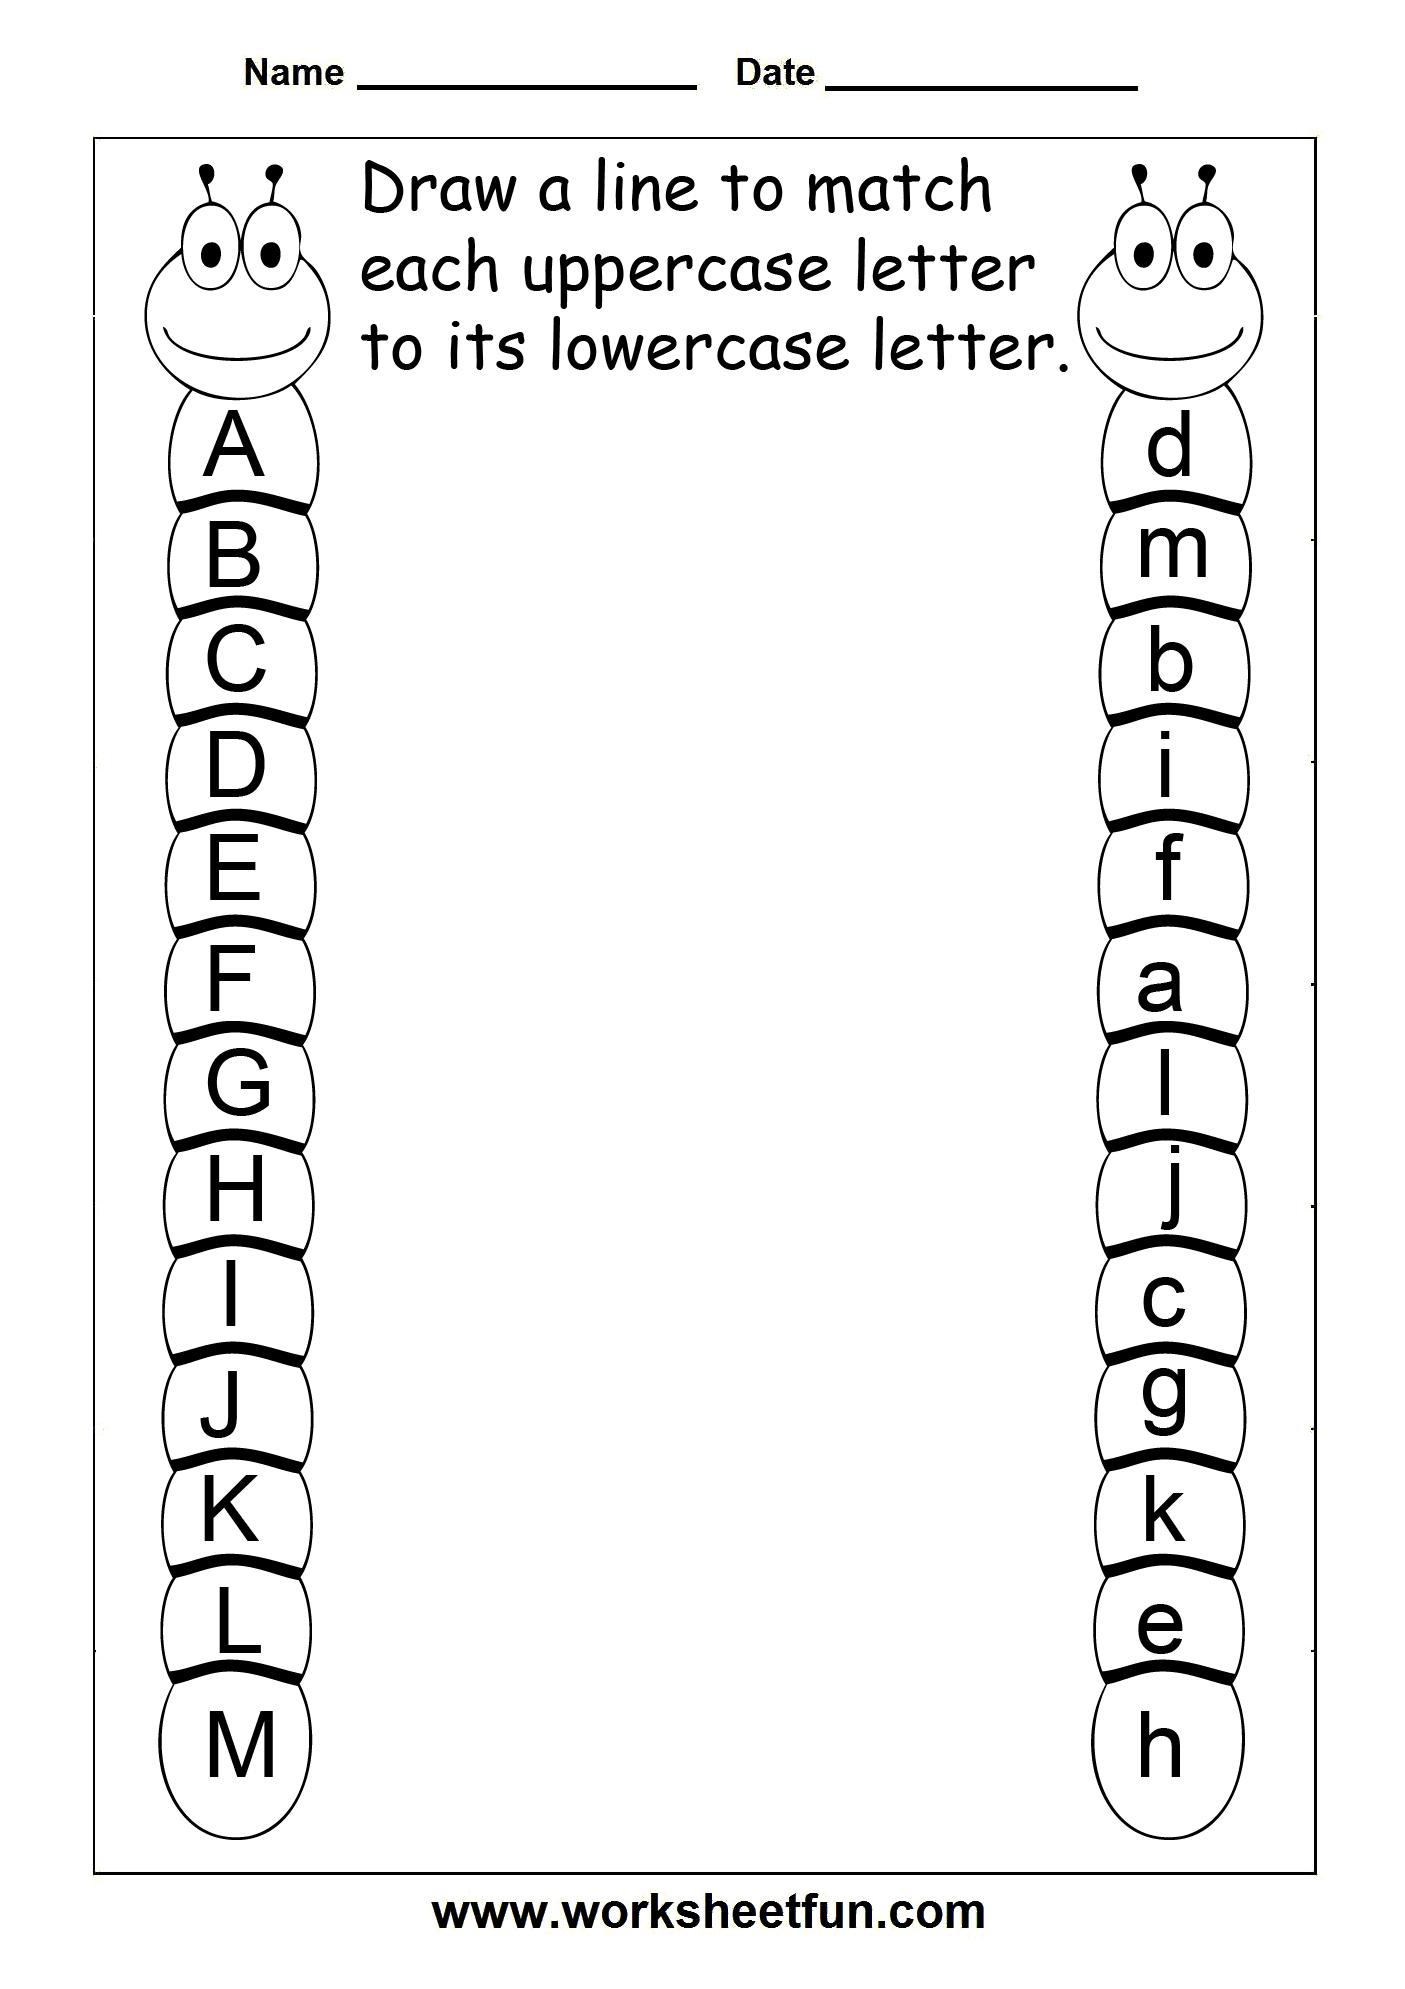 Weirdmailus  Ravishing  Images About Work Worksheet On Pinterest  Hidden Pictures  With Excellent  Images About Work Worksheet On Pinterest  Hidden Pictures Color By Numbers And Puzzles With Enchanting Worksheets To Do Online Also Subtraction Without Regrouping Worksheets Grade  In Addition Patterning Worksheets Grade  And Esl Jobs Worksheets As Well As Pictograms Worksheets Additionally Kids Spanish Worksheets From Pinterestcom With Weirdmailus  Excellent  Images About Work Worksheet On Pinterest  Hidden Pictures  With Enchanting  Images About Work Worksheet On Pinterest  Hidden Pictures Color By Numbers And Puzzles And Ravishing Worksheets To Do Online Also Subtraction Without Regrouping Worksheets Grade  In Addition Patterning Worksheets Grade  From Pinterestcom